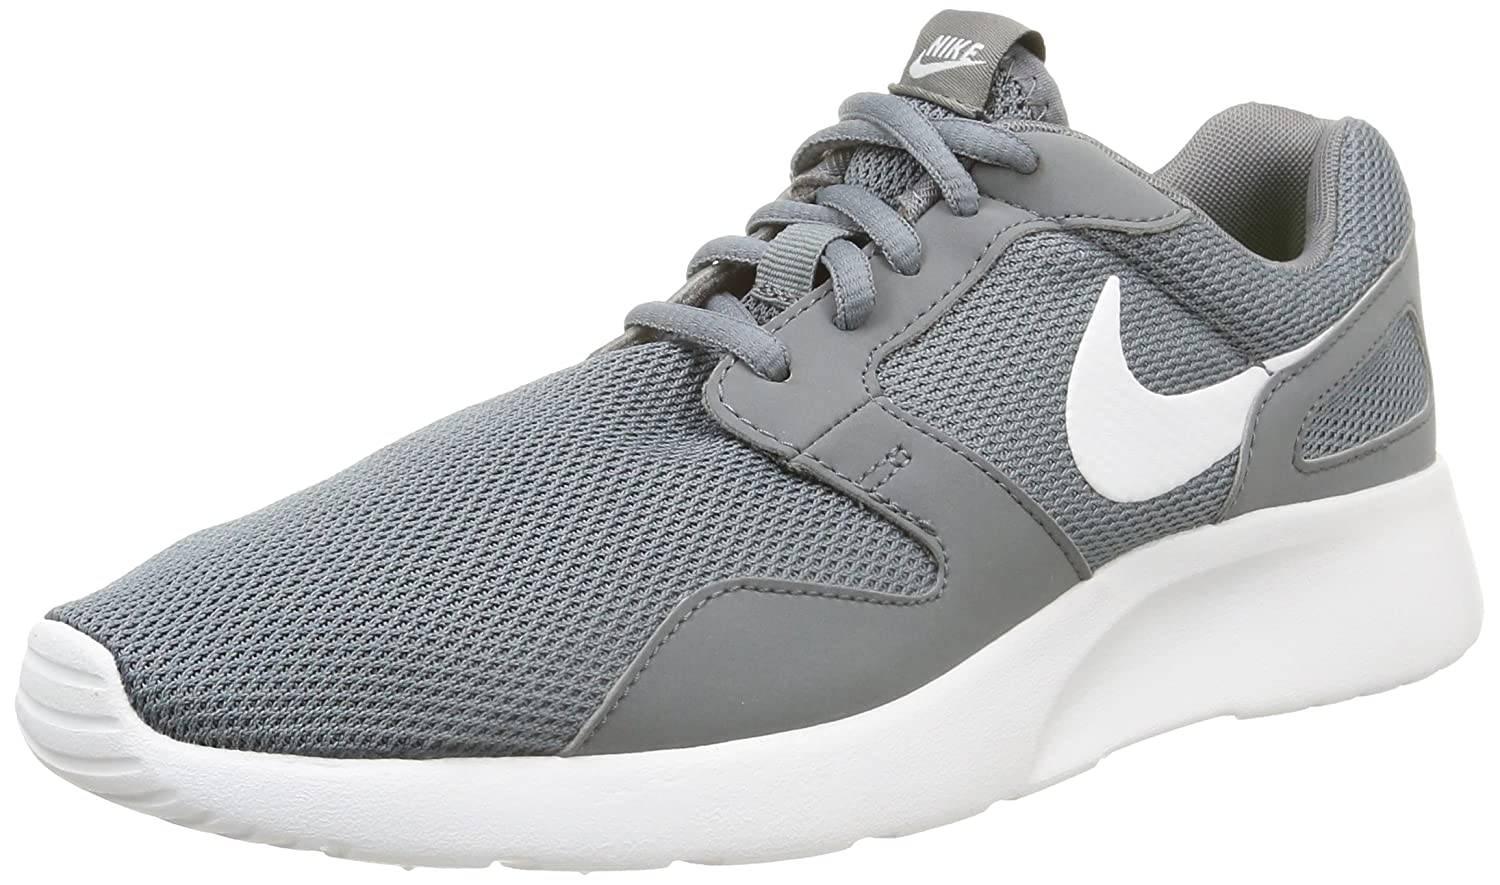 competitive price 8301c 92a2a Amazon.com   Nike Mens Kaishi Running Sneaker Cool Grey White 11.5    Fashion Sneakers